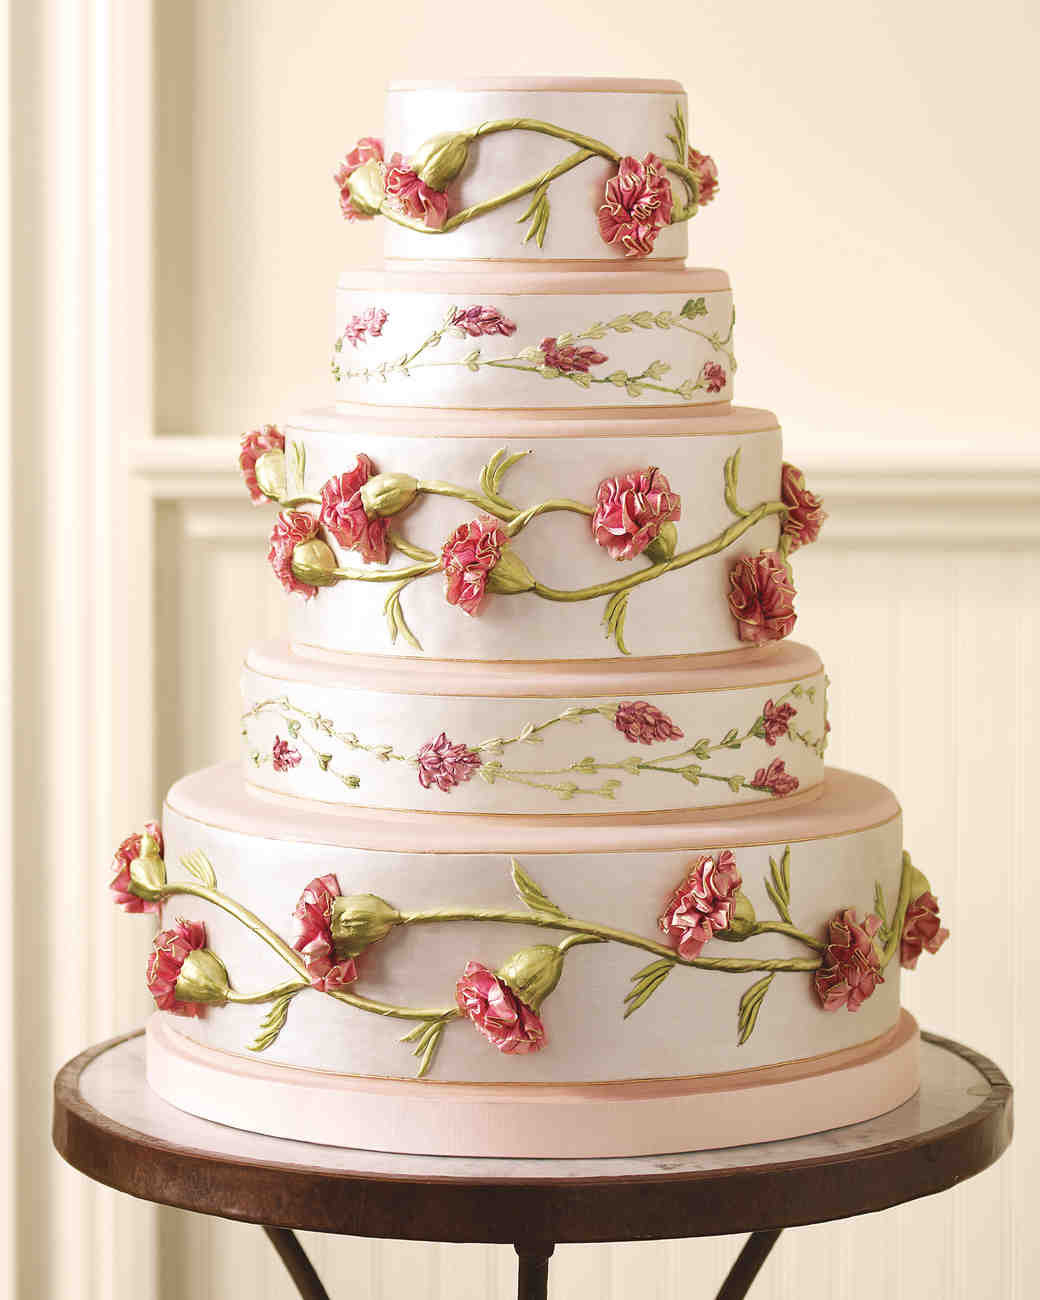 Martha Stewart Wedding Cakes  20 Years of Gorgeous Wedding Cakes by Pastry Chef Ron Ben